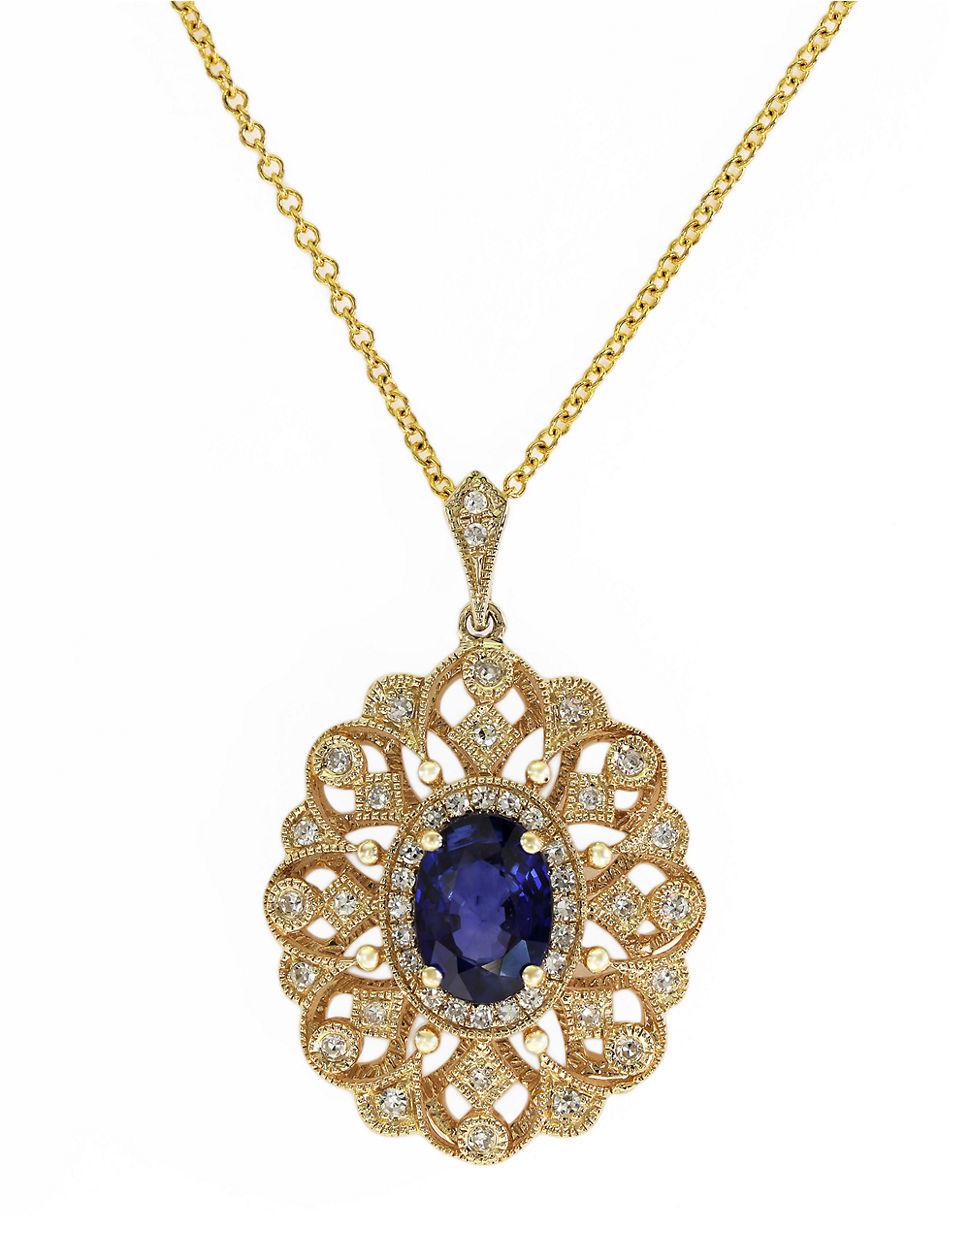 yellow sapphire necklace - photo #43